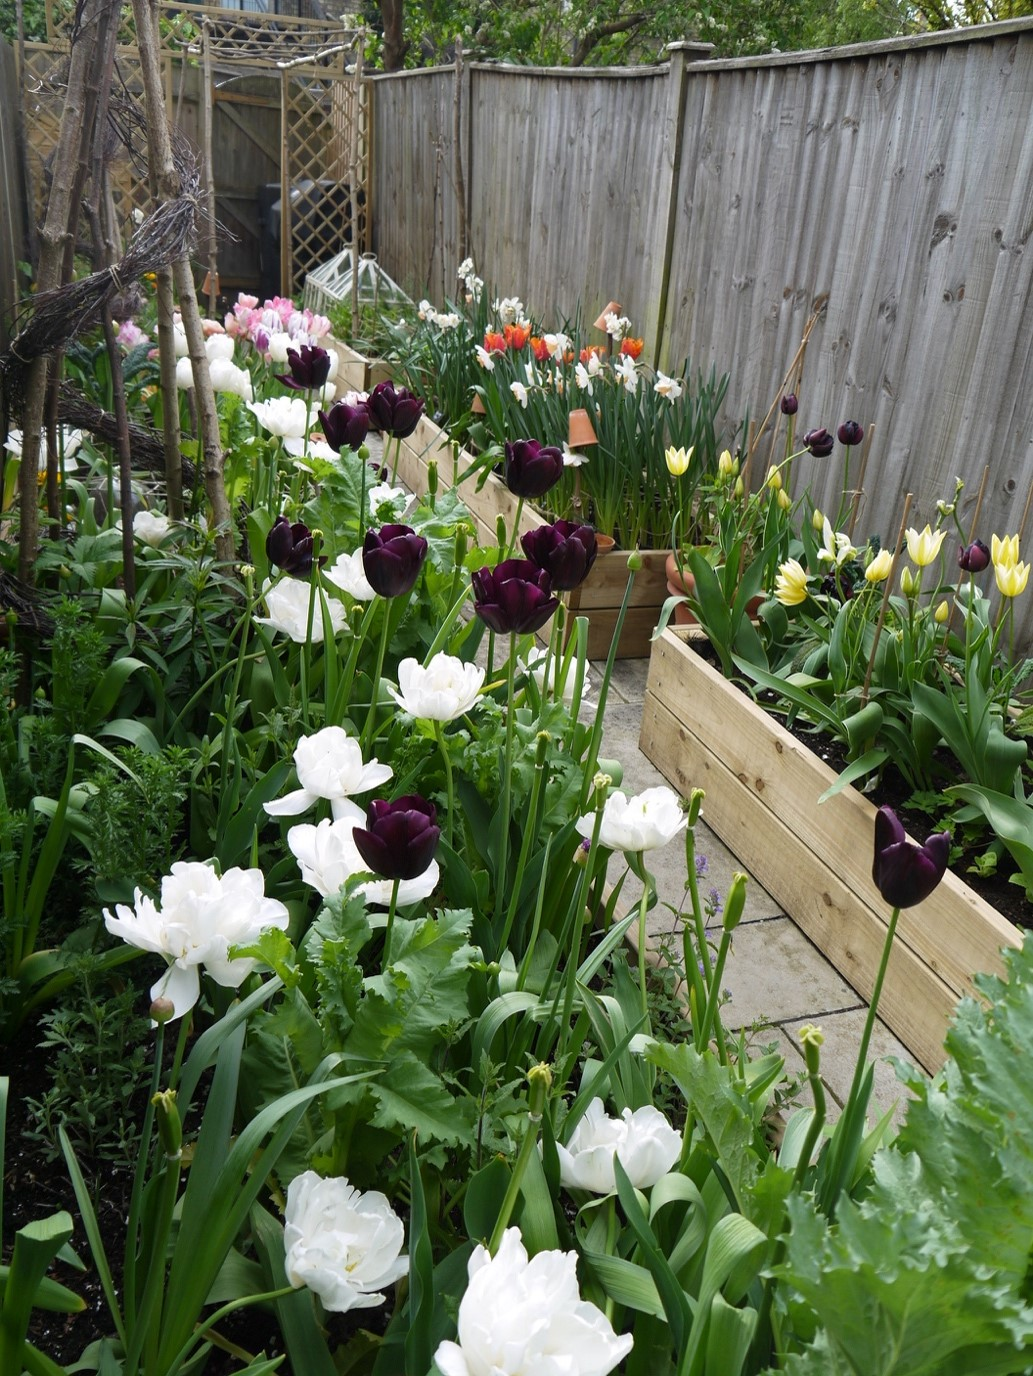 In this image, Alex has taken a closer picture of the flowers in his garden. The flowers are in wooden boxes along the side of the path. The flowers range from white, black, orange and yellow.